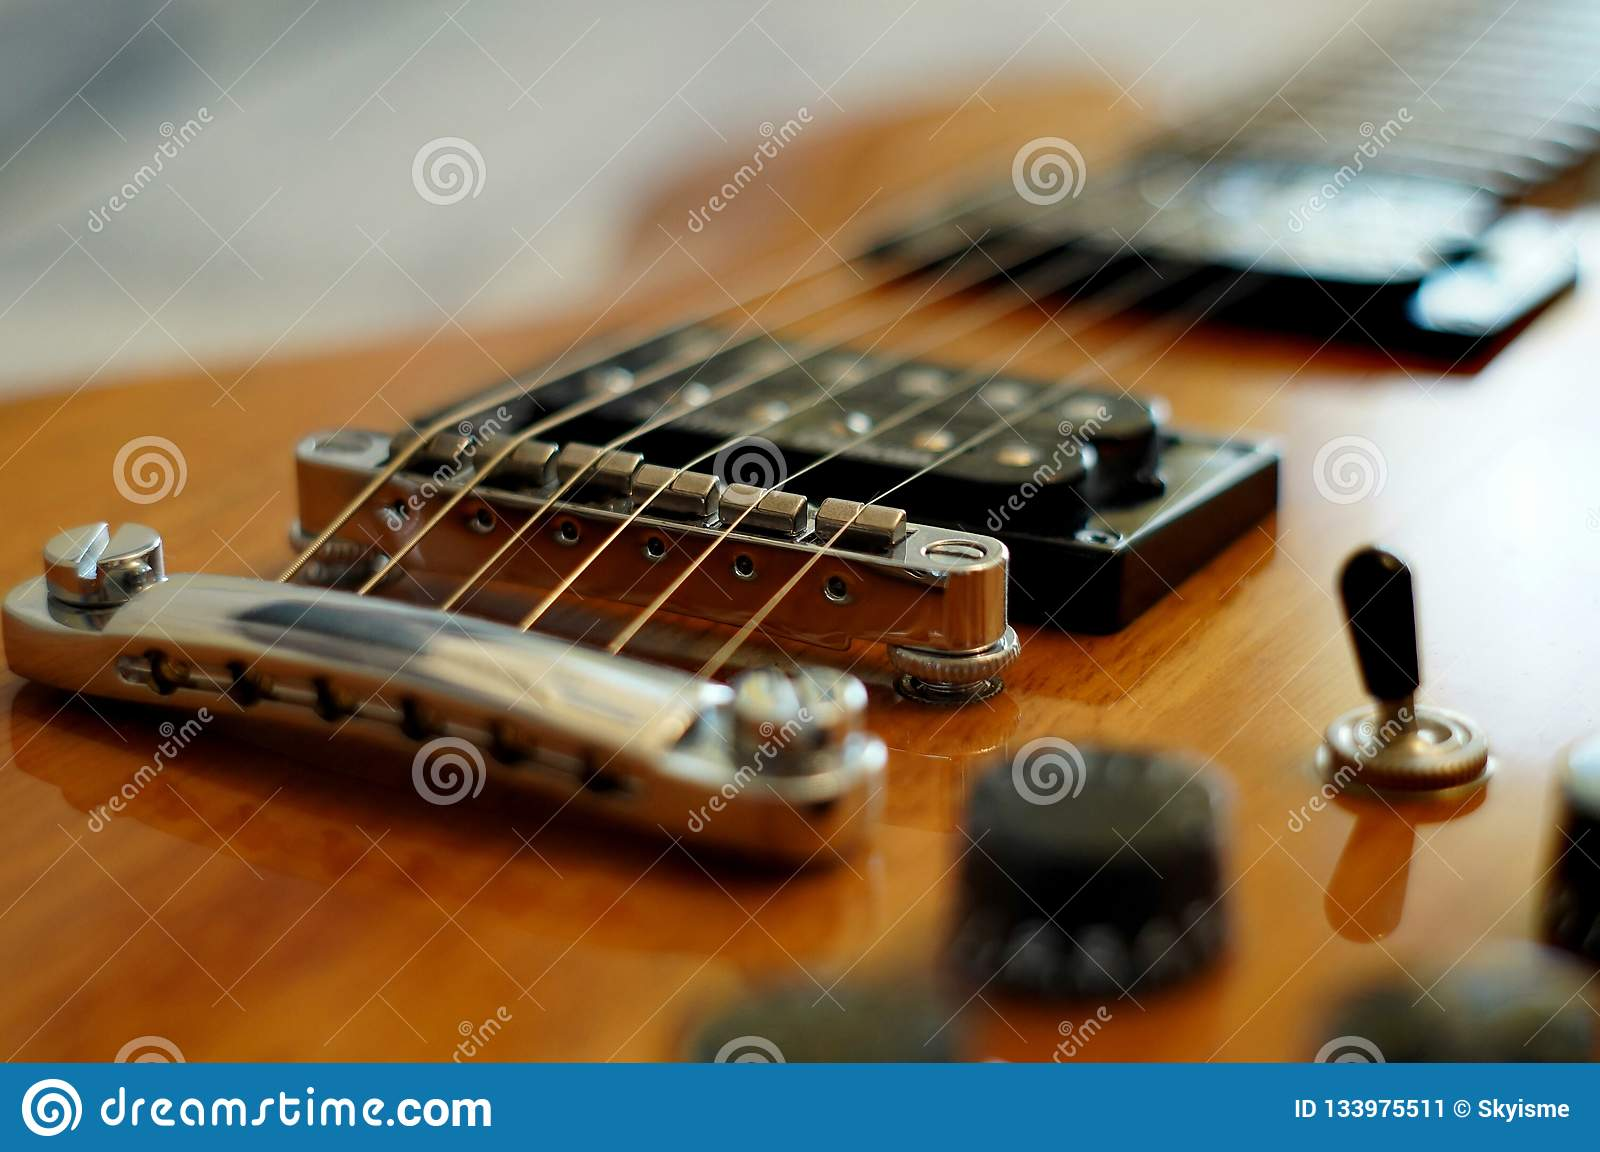 streams and bridges closeup shot of washburn idol wi 64 electric guitar with tune o matic. Black Bedroom Furniture Sets. Home Design Ideas